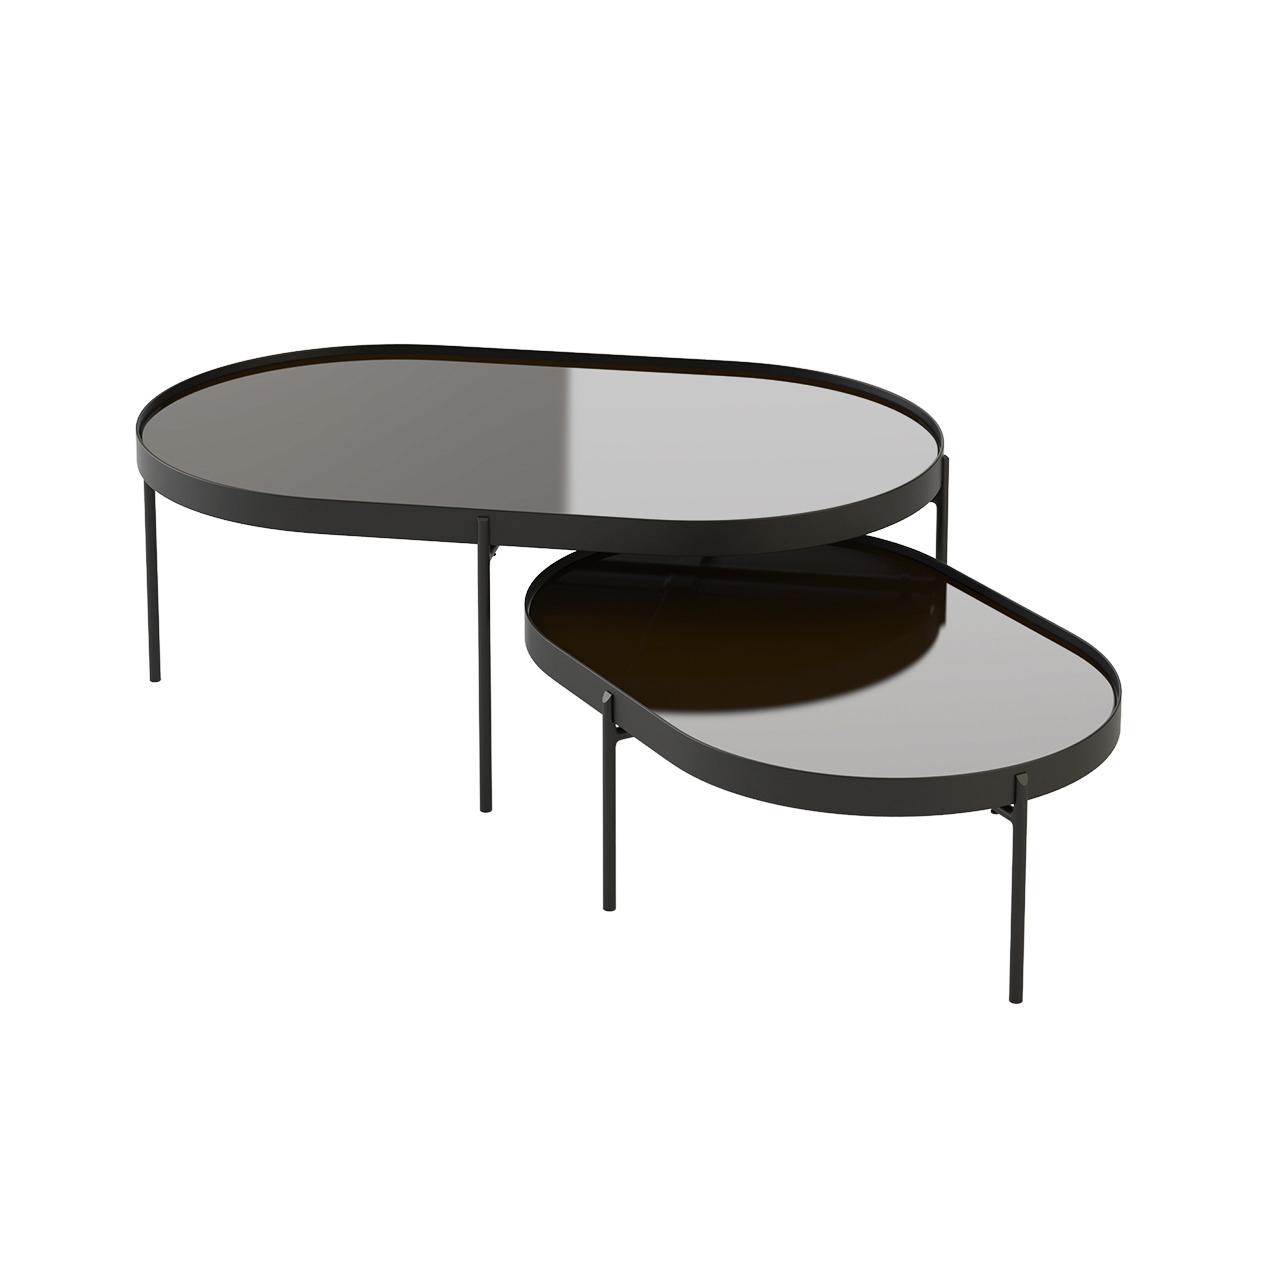 lithos tables by b b italia dimensiva. Black Bedroom Furniture Sets. Home Design Ideas